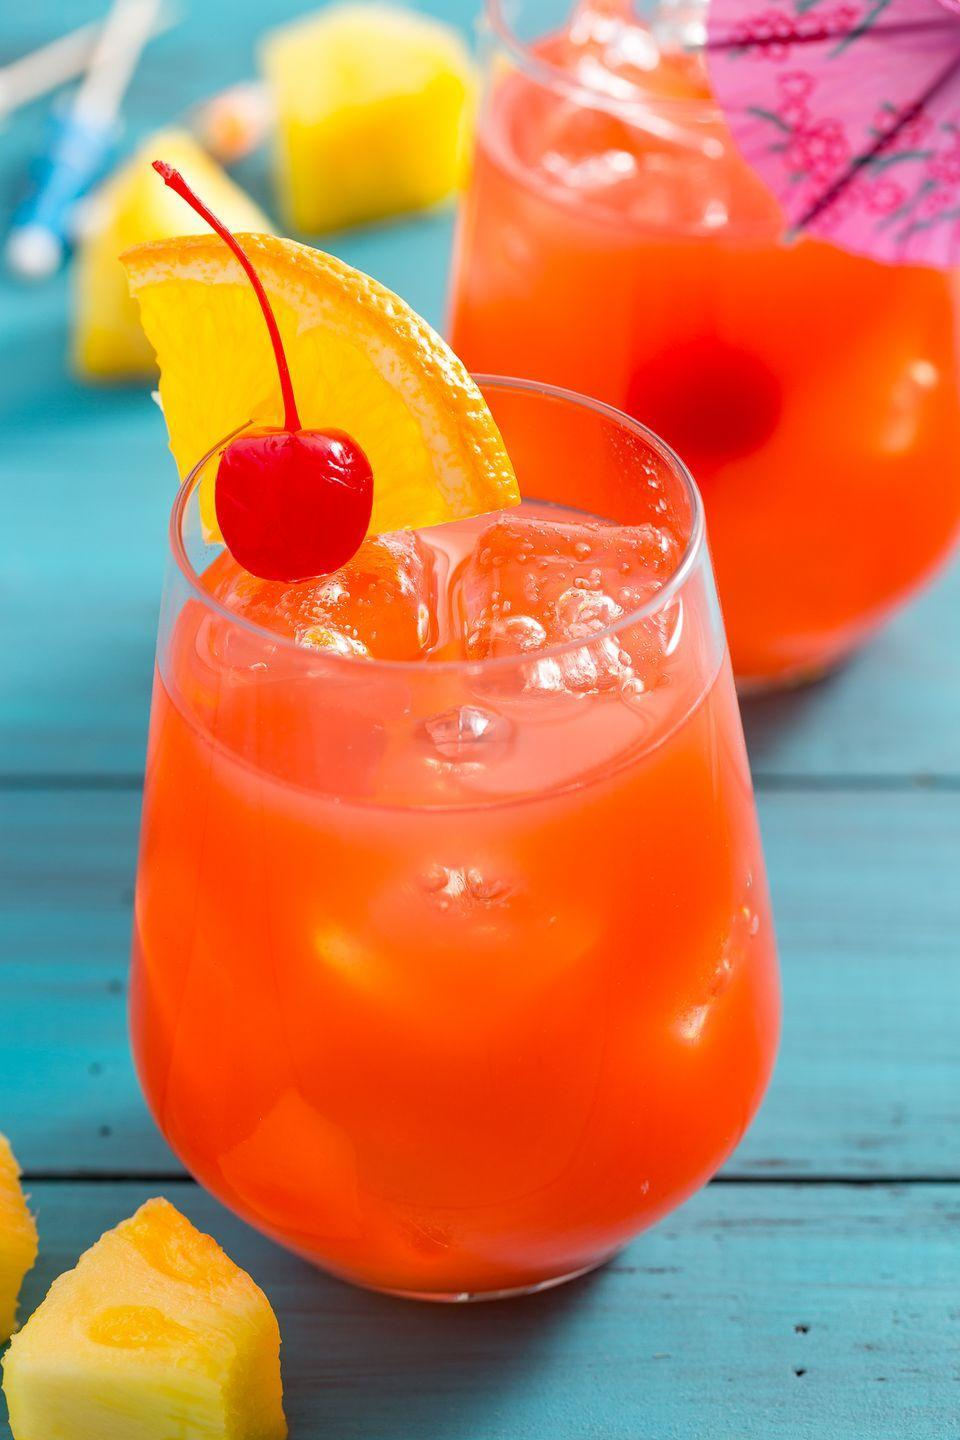 """<p>We might need to be on a beach with this one.</p><p>Get the recipe from <a href=""""https://www.delish.com/cooking/recipe-ideas/recipes/a5631/hurricane-tropical-drinks-cocktails/"""" rel=""""nofollow noopener"""" target=""""_blank"""" data-ylk=""""slk:Delish"""" class=""""link rapid-noclick-resp"""">Delish</a>.</p>"""